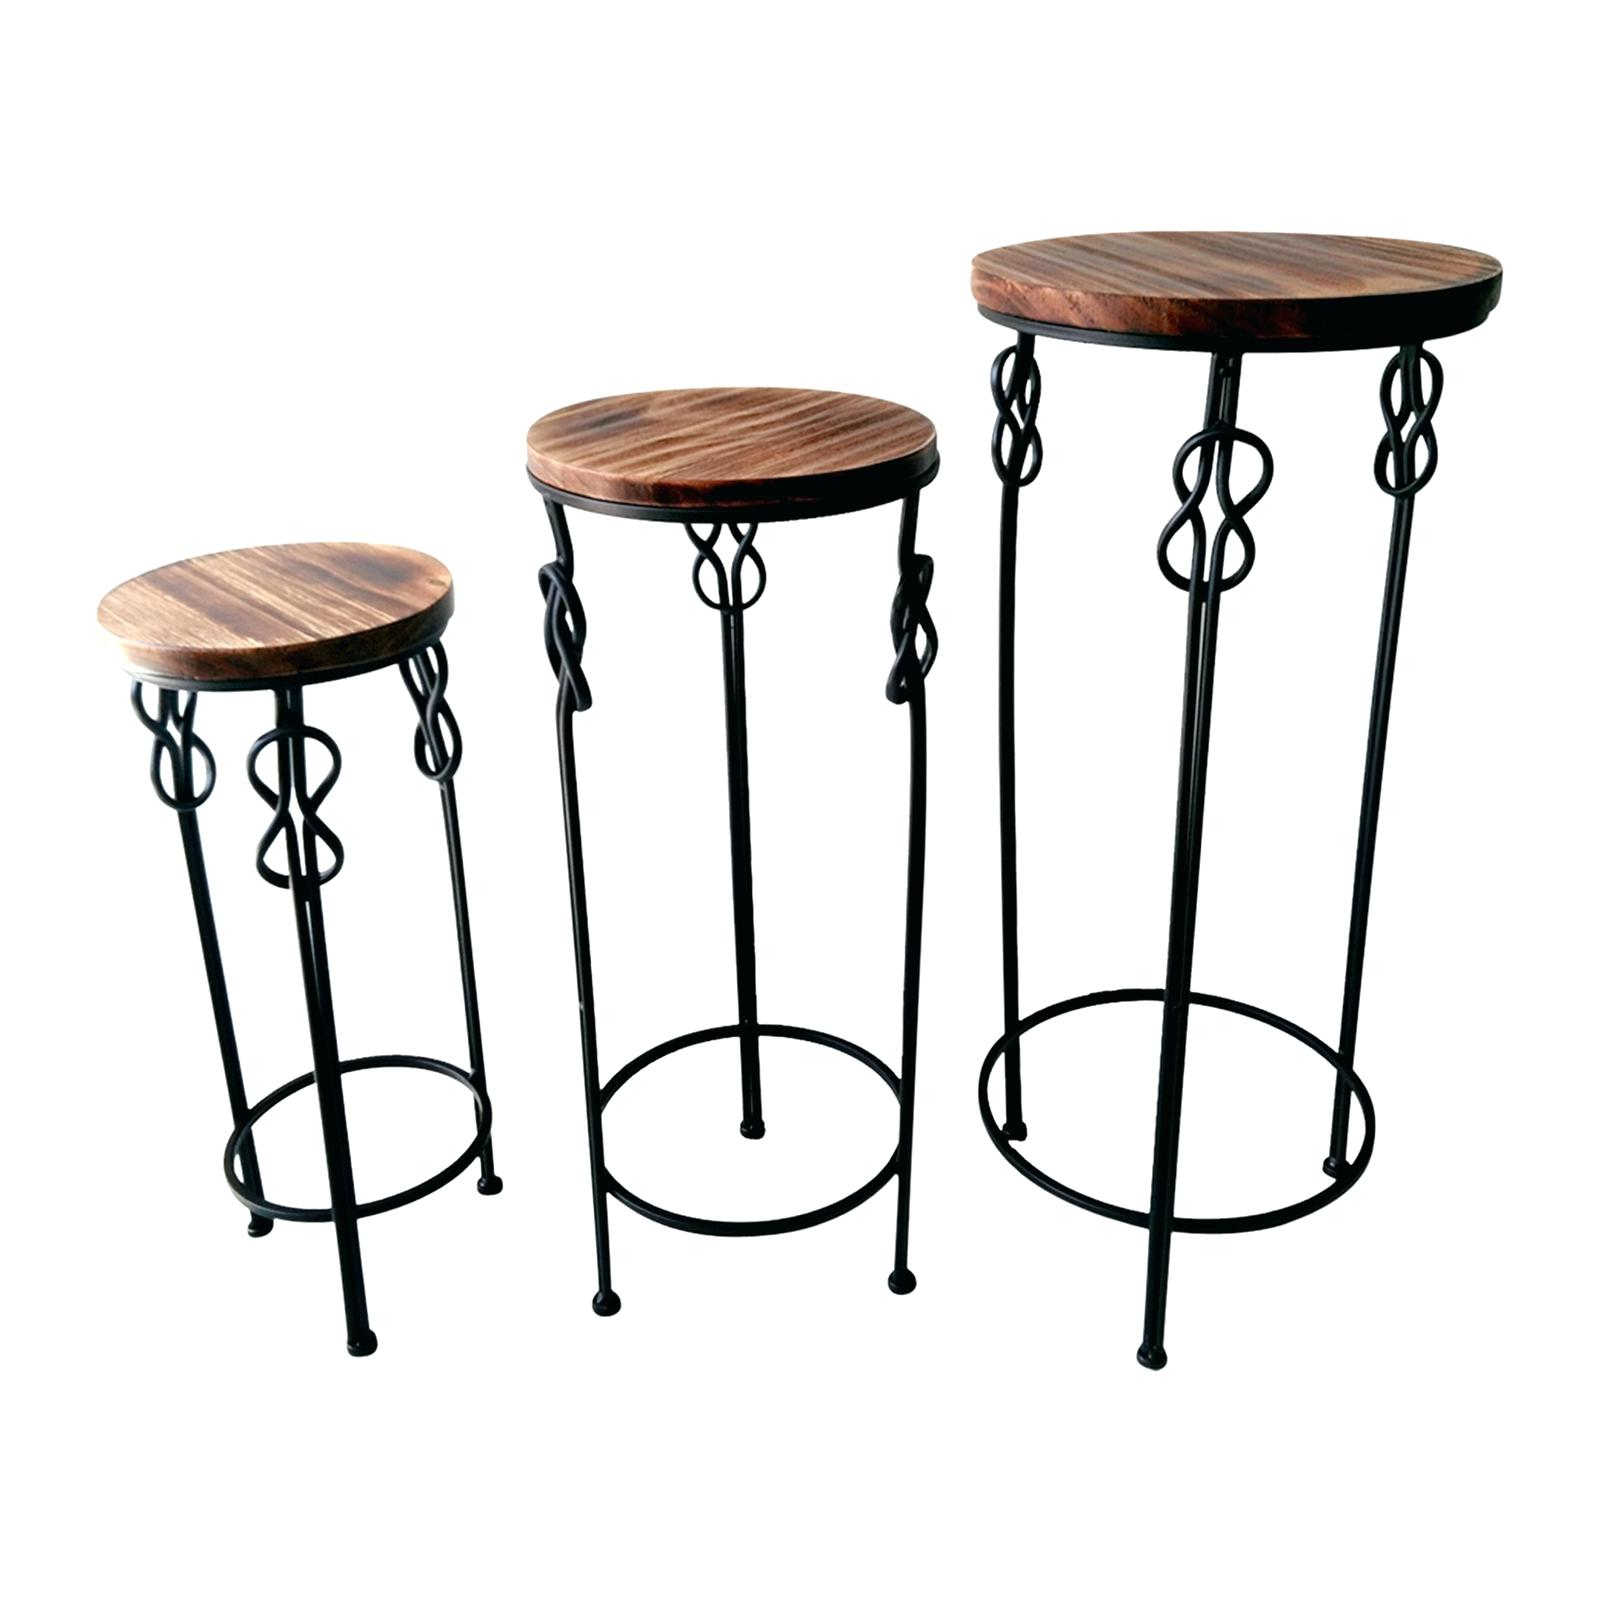 avani mango table sbud wood accent medium round amp steel knot drum all glass coffee entryway patio dark brown metal end base next living room furniture piece threshold rustic